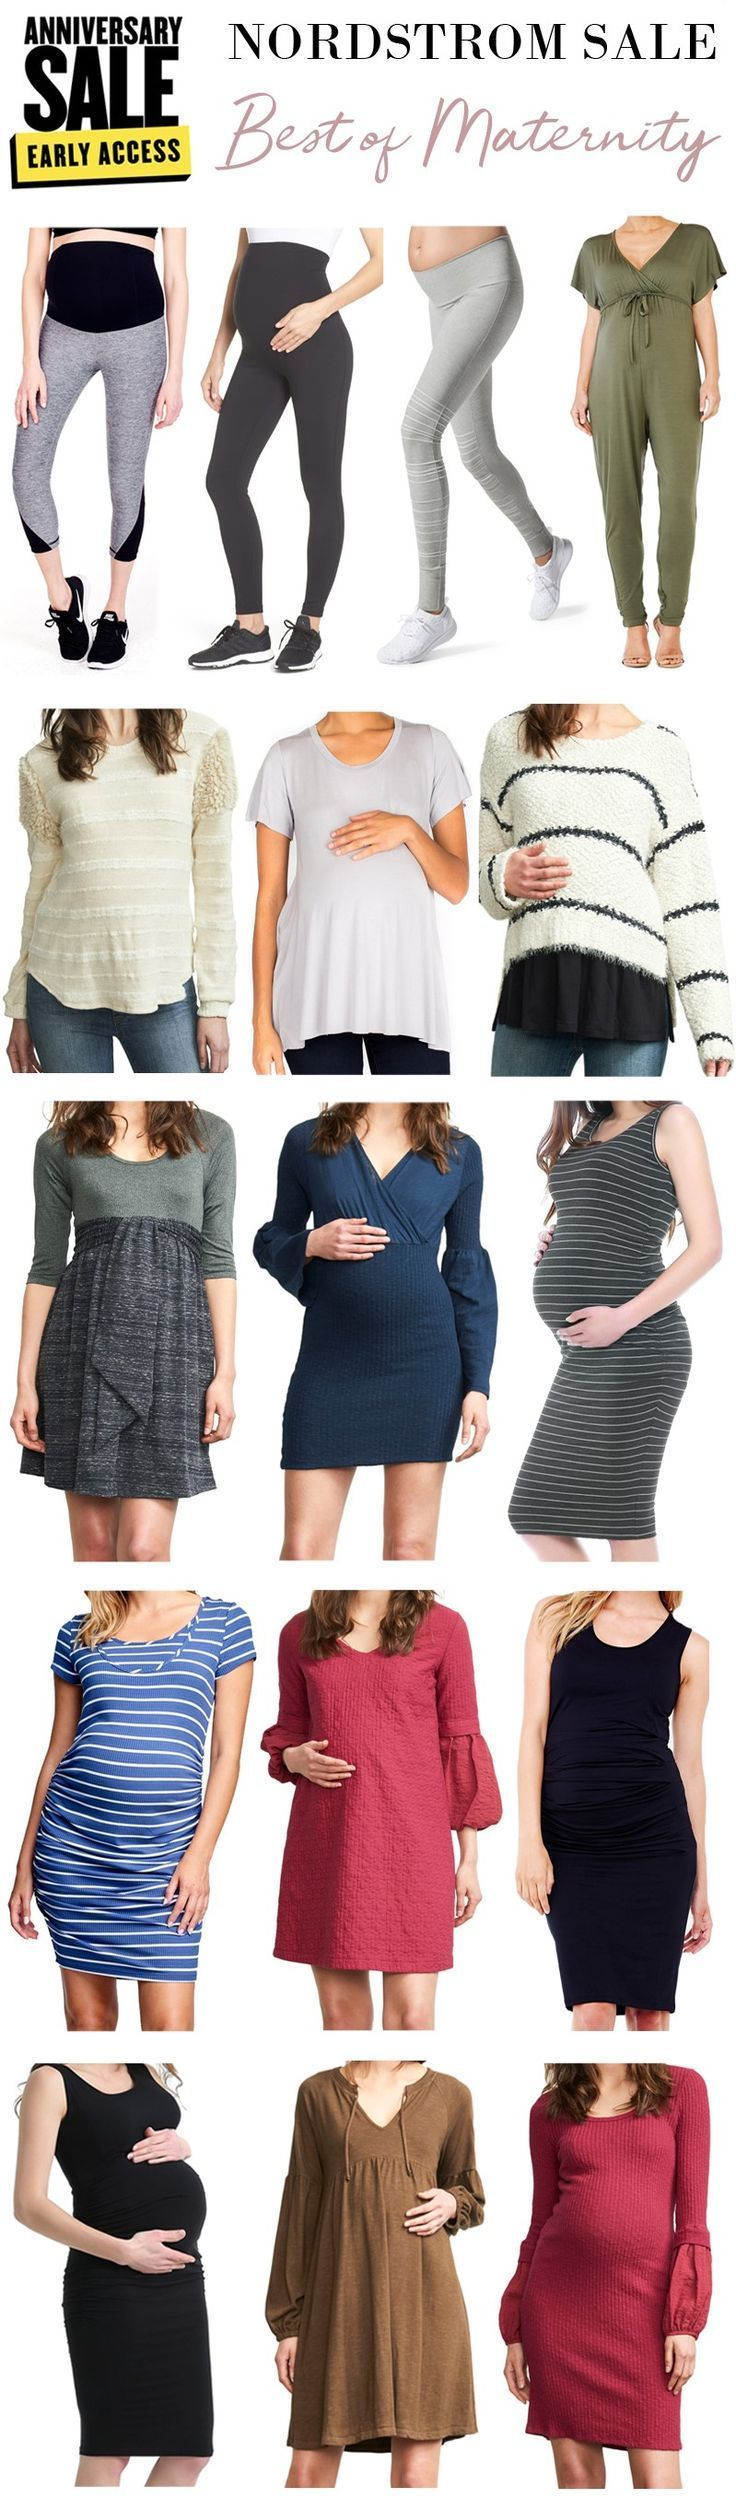 Pregnant Fashion Women Maternity Short Sleeve Casual Dress Cotton Summer Clothes... - #casual #Clothes #Cotton #Dress #Fashion #maternity #Pregnant #Short #Sleeve #Summer #Women #pregnant fashion summer